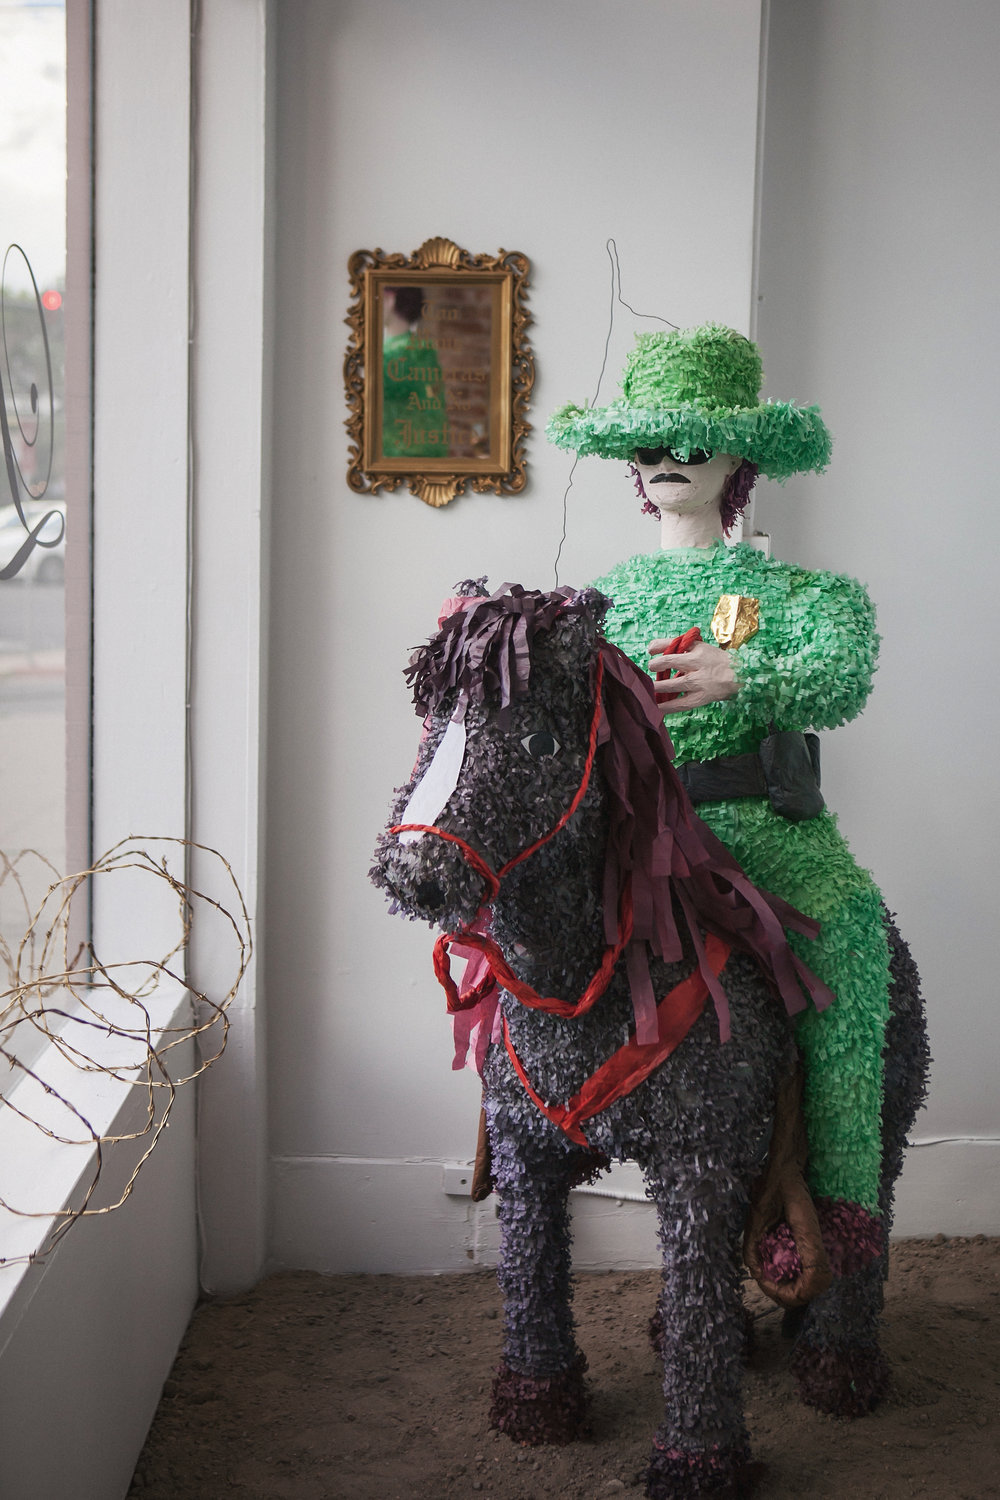 """Western American Posse for the People. A phenomenal Order of Historical yet Dissimilar Expressions of Artistic and Social Considerations.""  Mounted Guard Piñata 71"" x 50"" x 22""  2016"